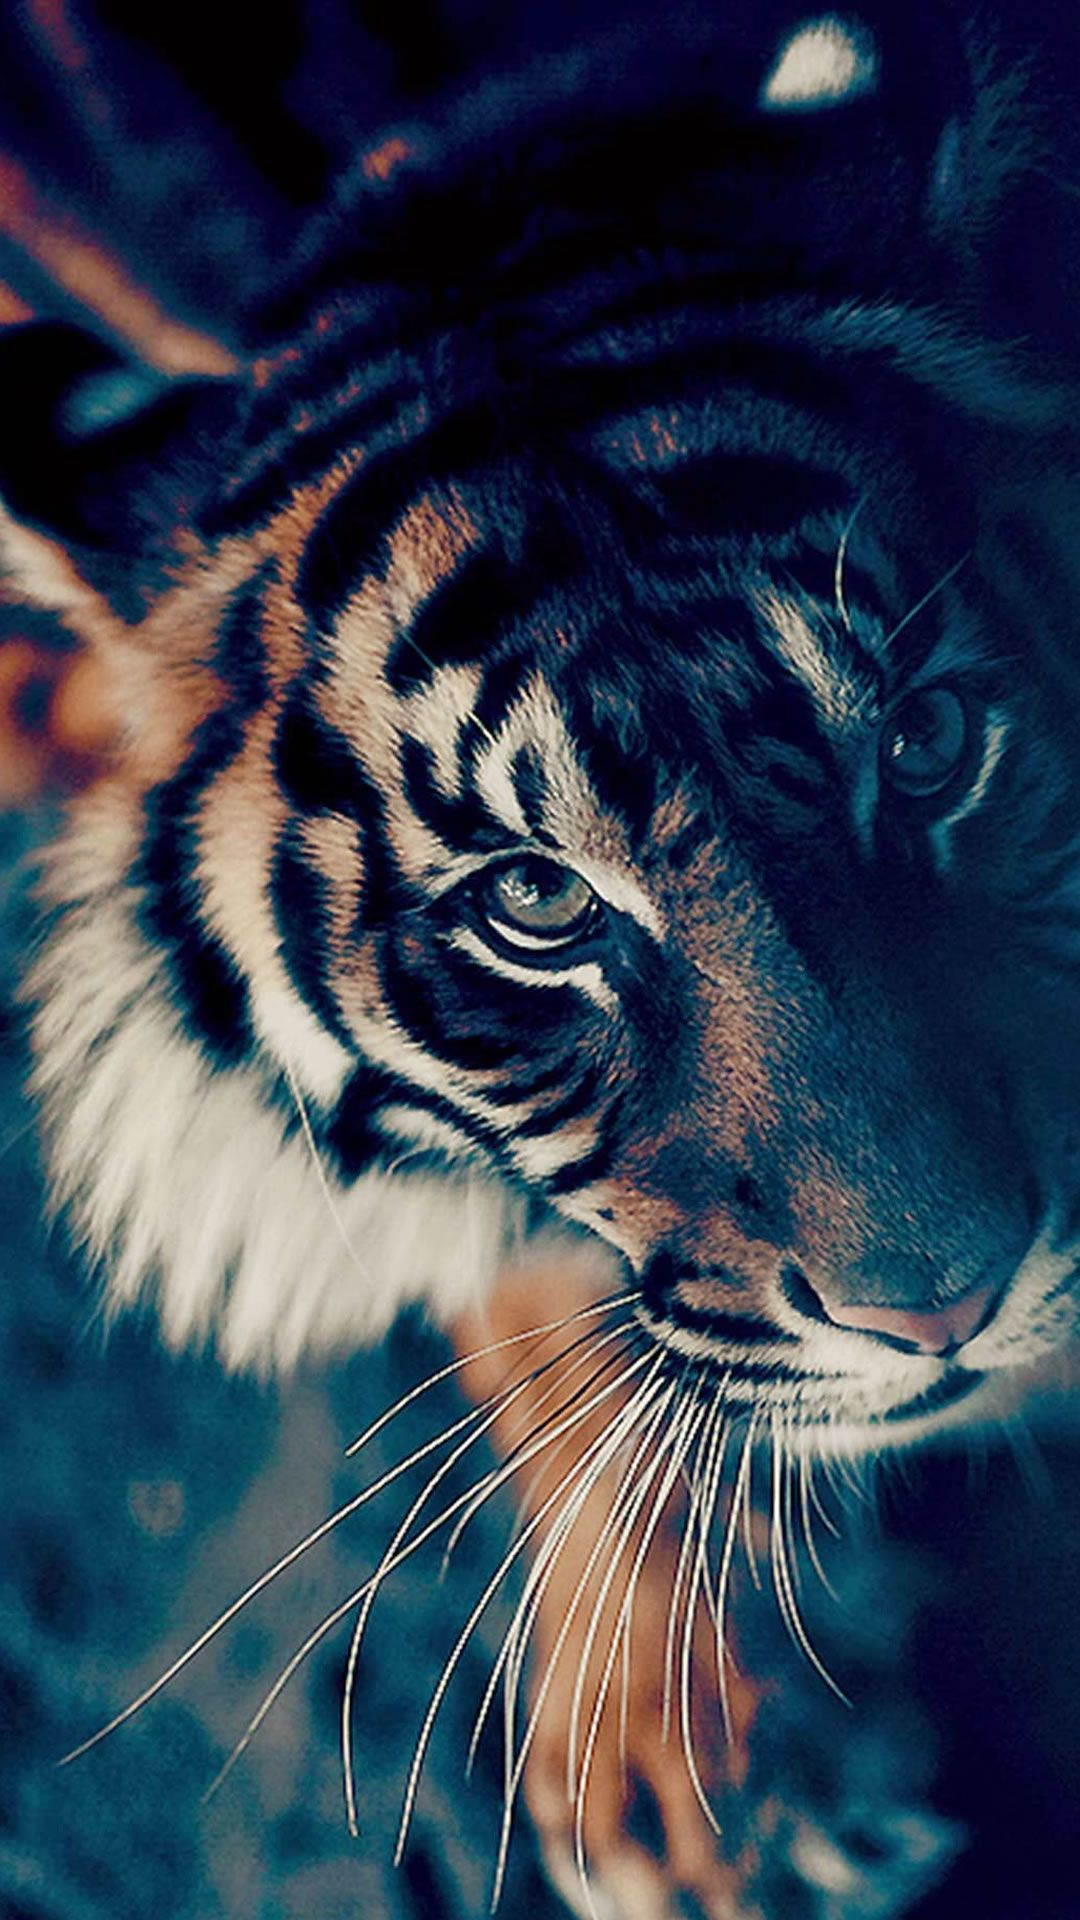 Tiger Android Iphone Desktop Hd Backgrounds Wallpapers 1080p 4k 122595 Hdwallpapers Androidwallpapers Animals Tiger Wallpaper Animals Beautiful